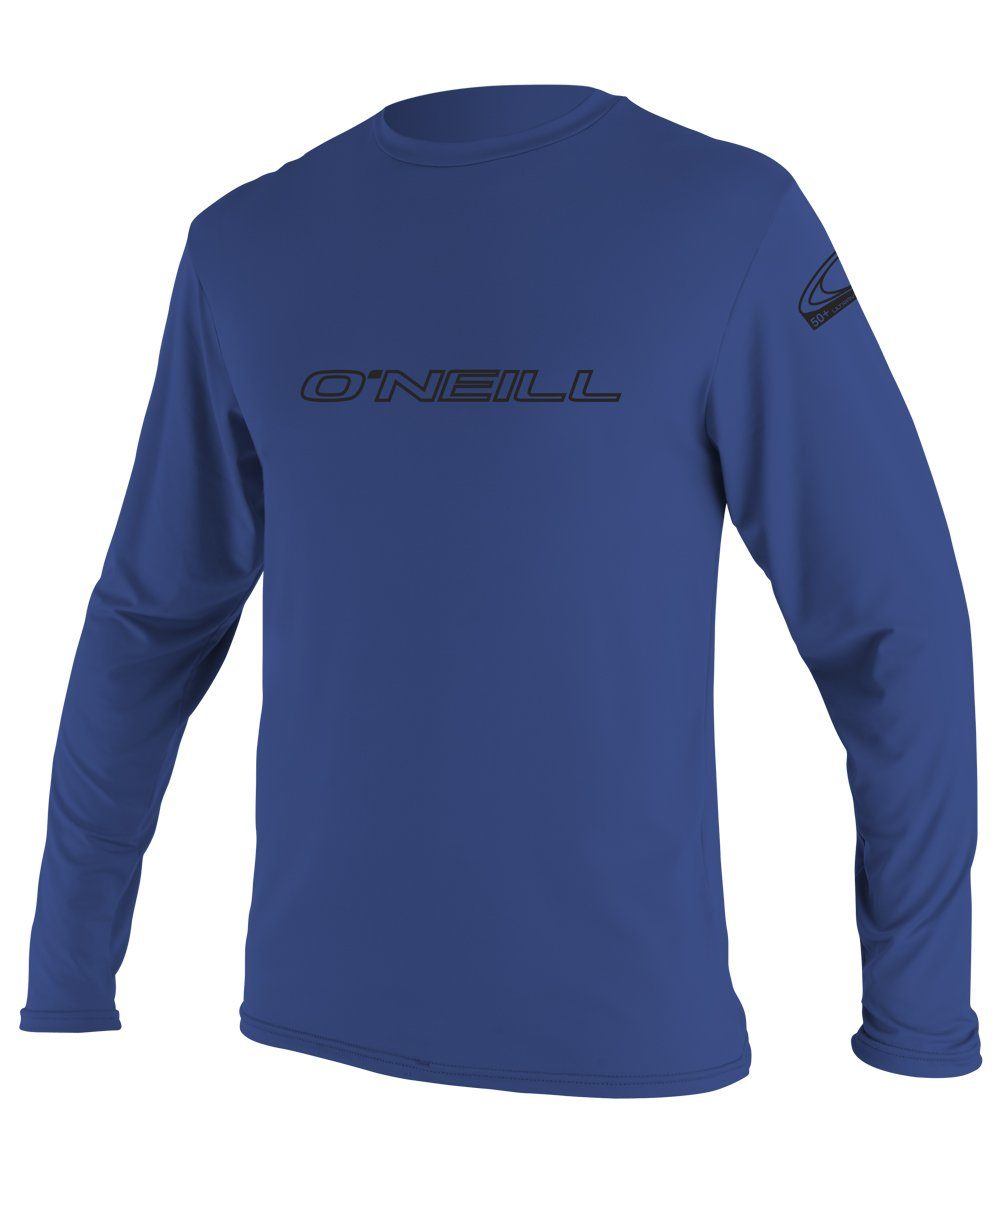 O'Neill Wetsuits Wetsuits UV Sun Protection Mens Basic Skins Long Sleeve Tee Sun Shirt Rash Guard, Pacific, Small by O'Neill Wetsuits (Image #2)